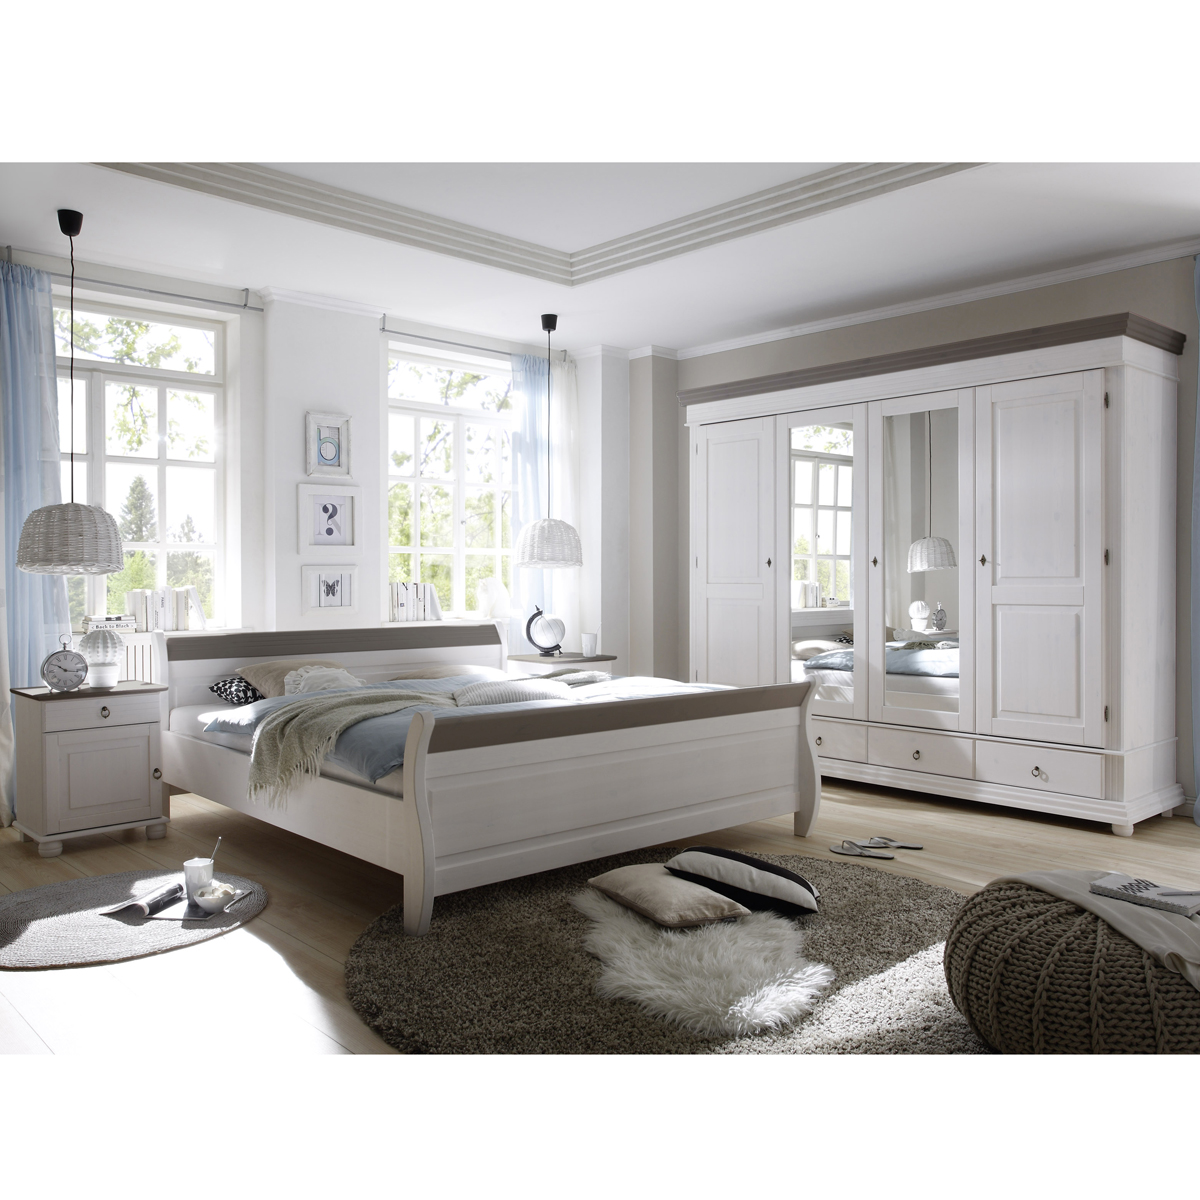 schlafzimmer set oslo kiefer massiv wei und lava nachttische doppelbett schrank ebay. Black Bedroom Furniture Sets. Home Design Ideas